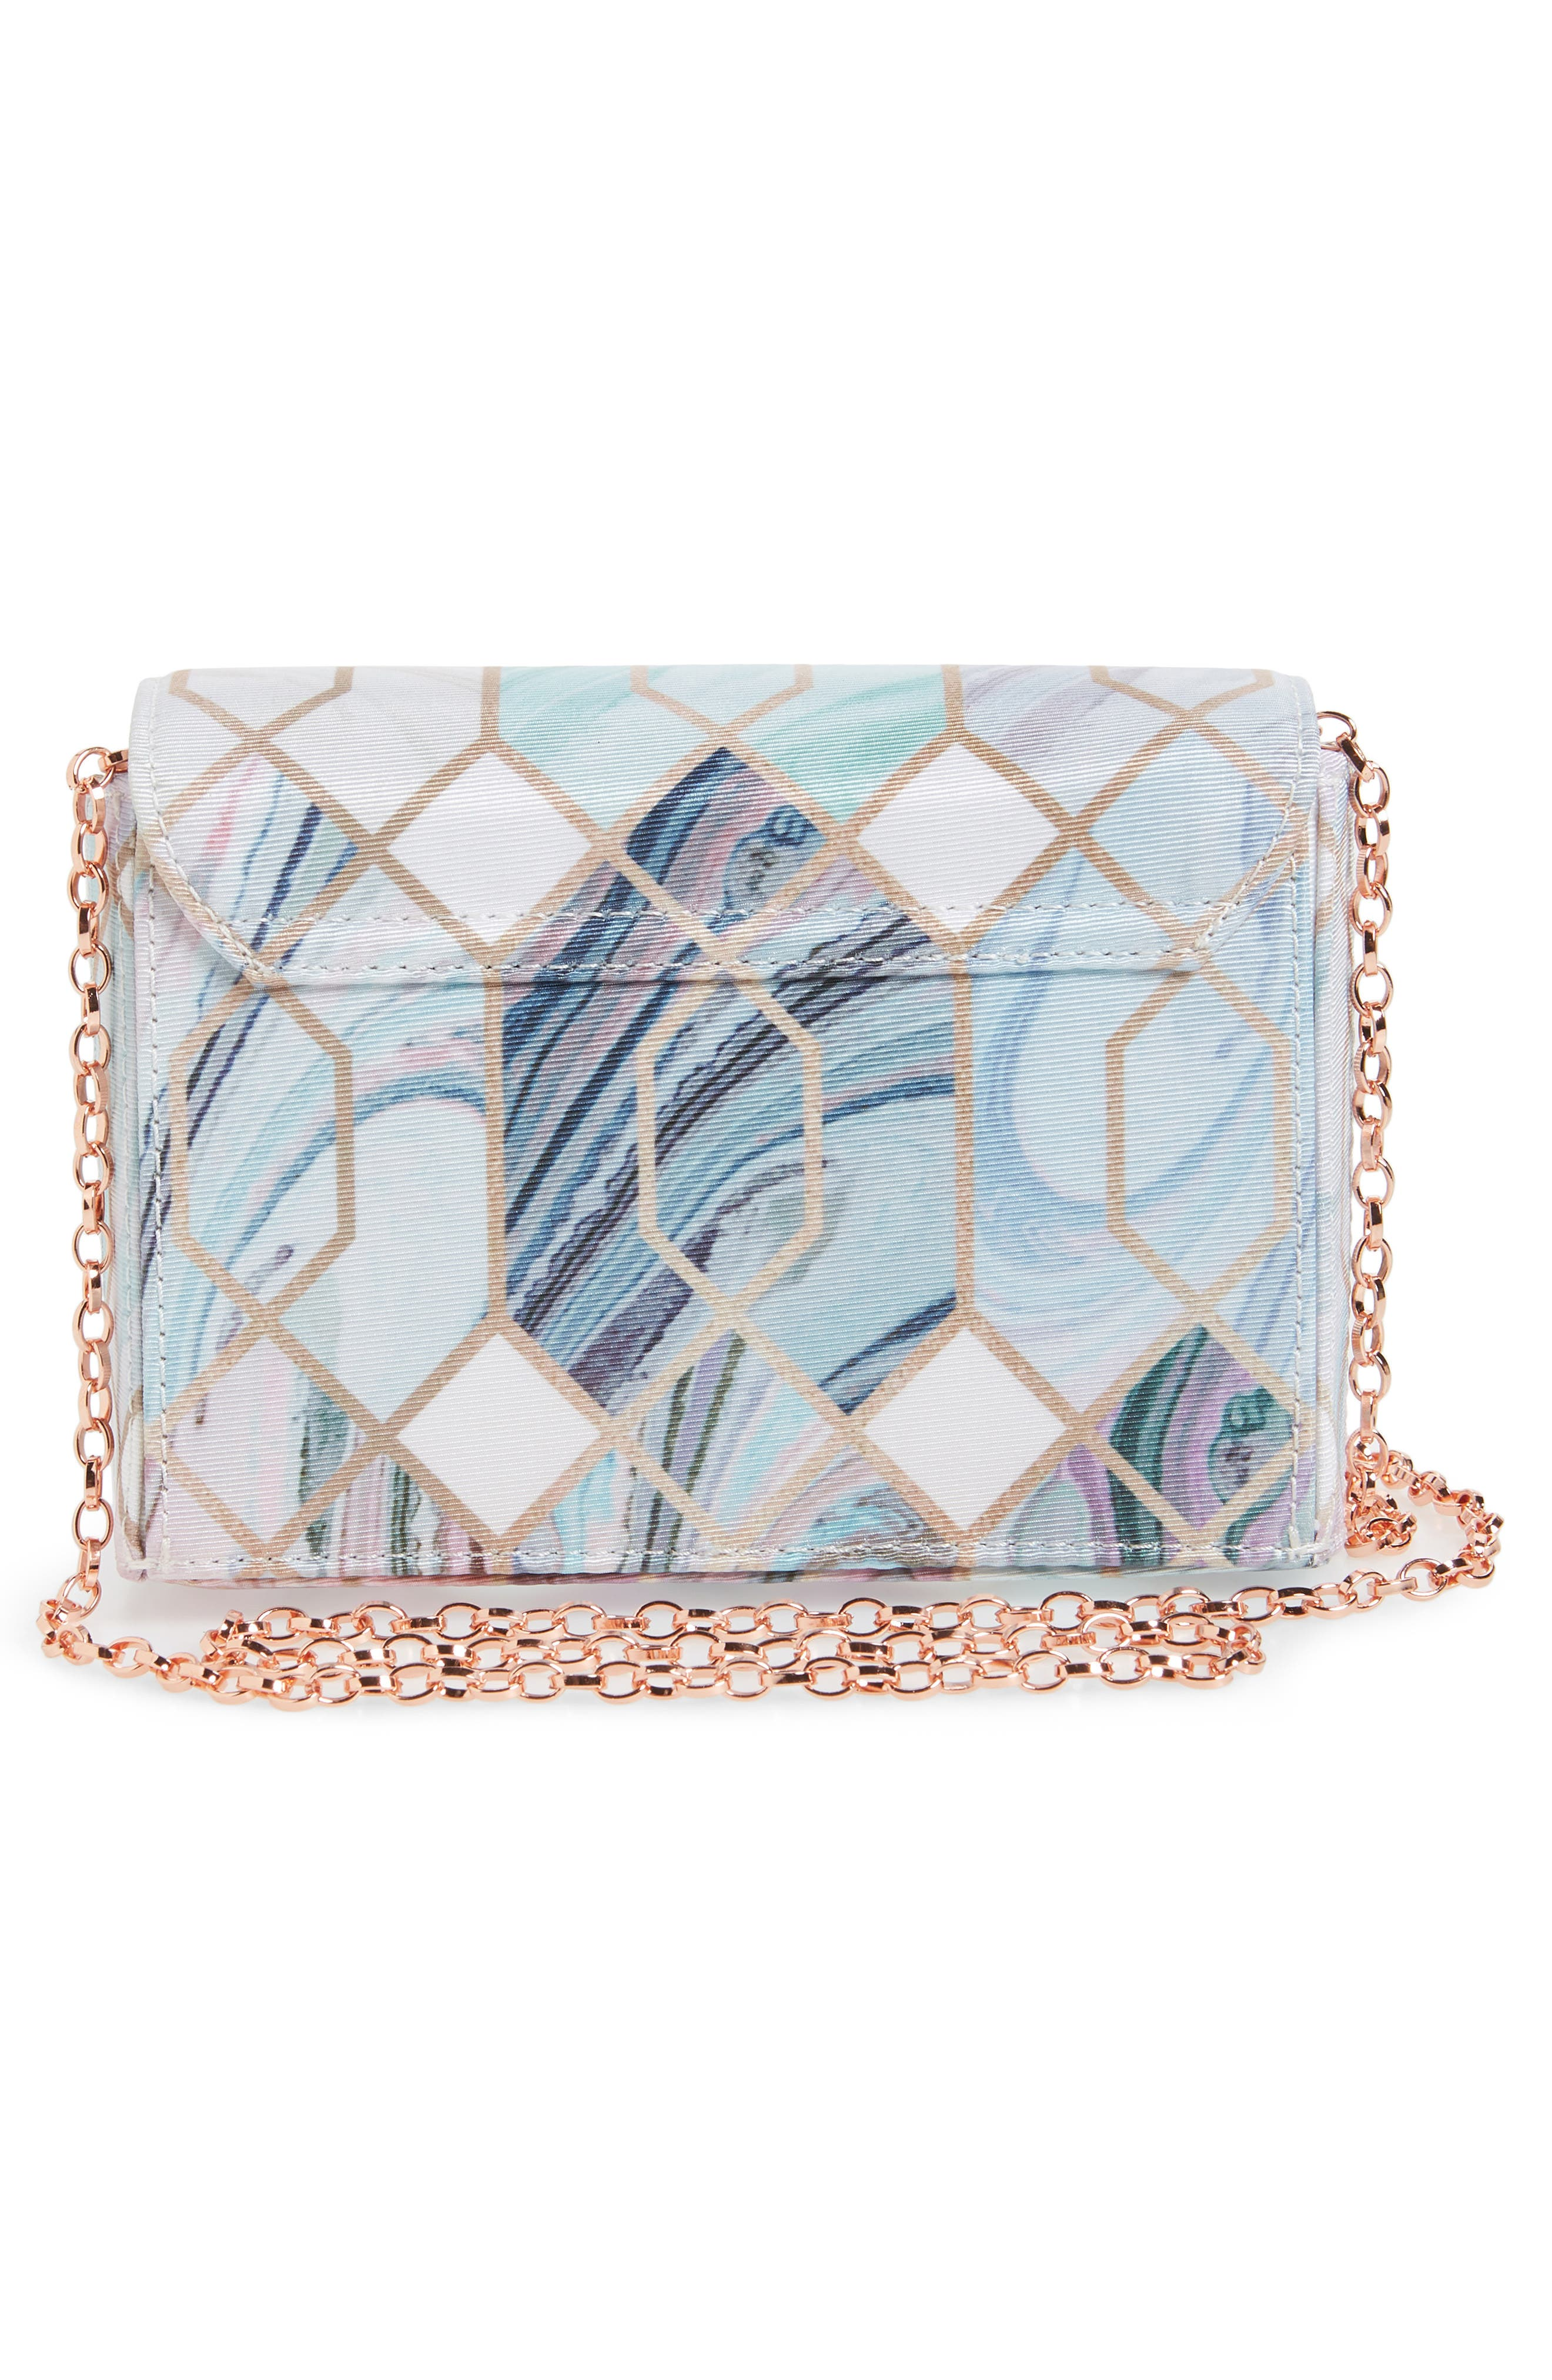 Nikiita Sea of Clouds Evening Bag,                             Alternate thumbnail 3, color,